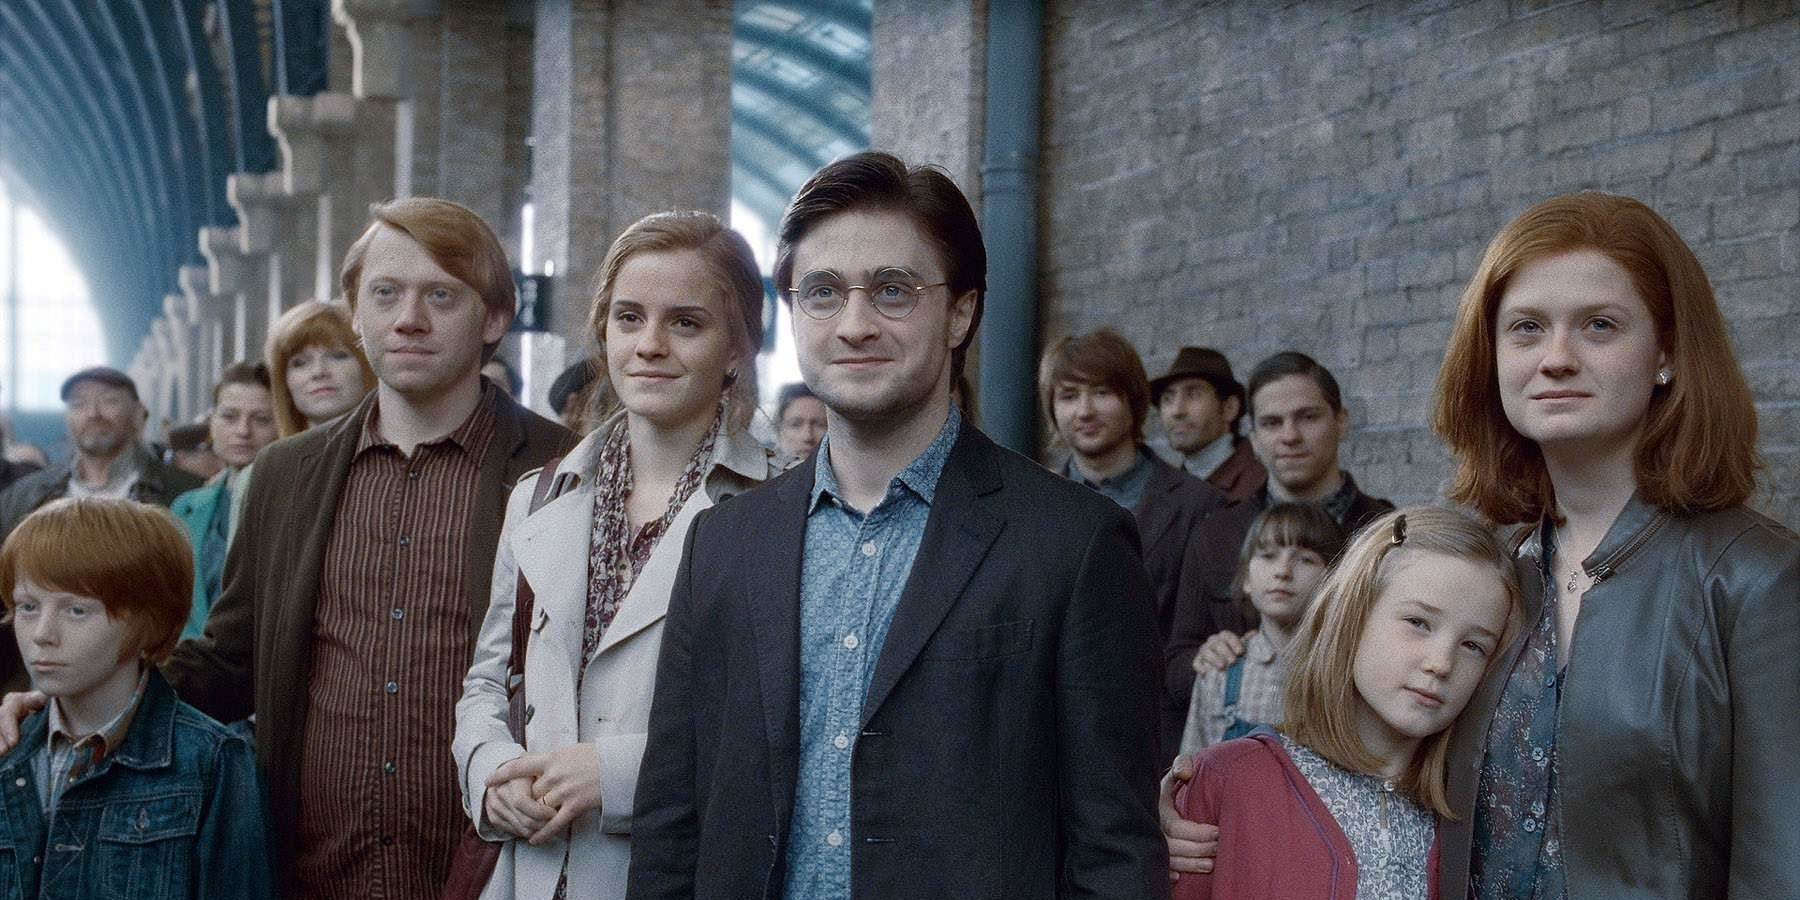 The Time Turner Isn't the Problem in New 'Harry Potter' Book